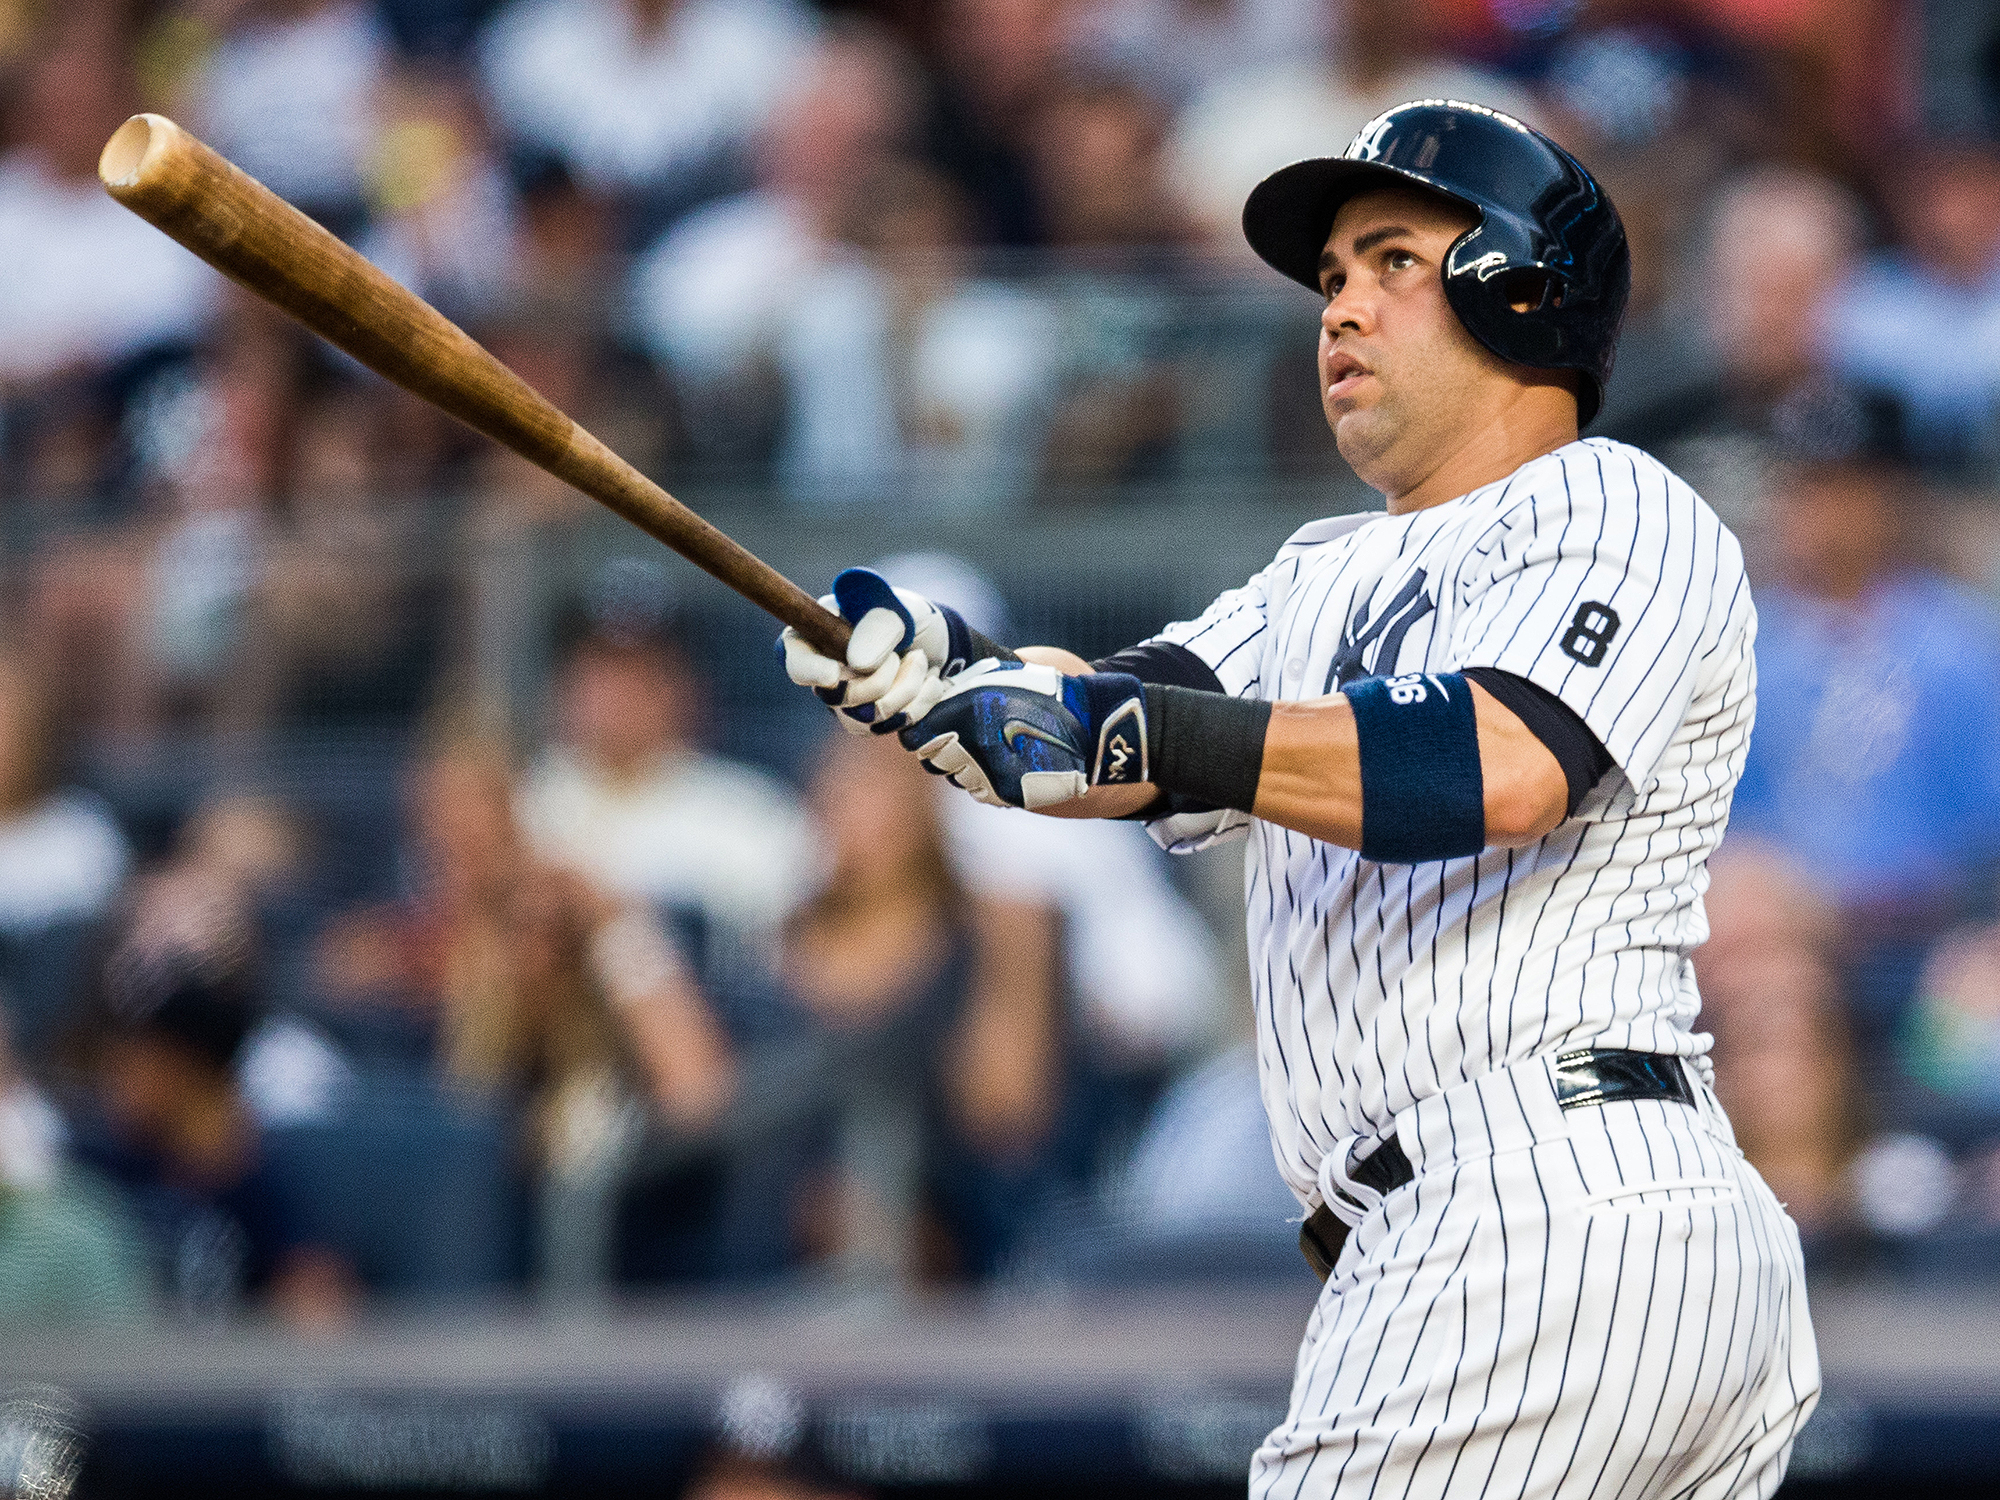 New York Yankees Carlos Beltran